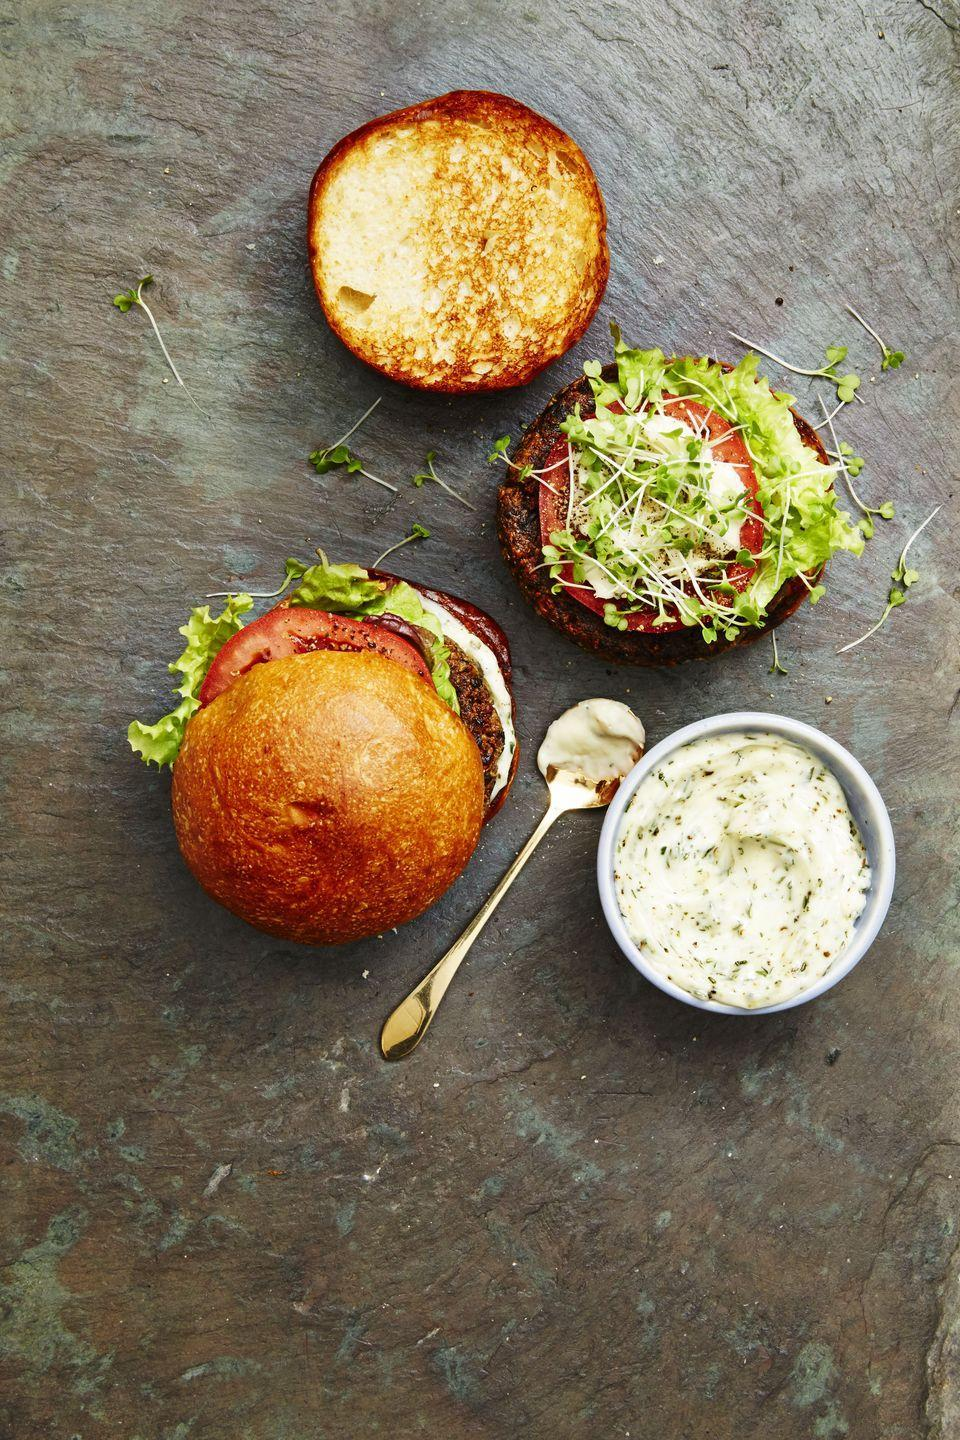 """<p>This is the meatiest non-meat burger you will ever taste in your life, thanks to hearty ingredients like mushrooms, walnuts, and quinoa.</p><p><a href=""""https://www.goodhousekeeping.com/food-recipes/a38846/mushroom-quinoa-burger-recipe/"""" rel=""""nofollow noopener"""" target=""""_blank"""" data-ylk=""""slk:Get the recipe for Mushroom-Quinoa Burger »"""" class=""""link rapid-noclick-resp""""><em><span class=""""redactor-invisible-space"""">Get the recipe for Mushroom-Quinoa Burger »</span> </em></a><br></p>"""